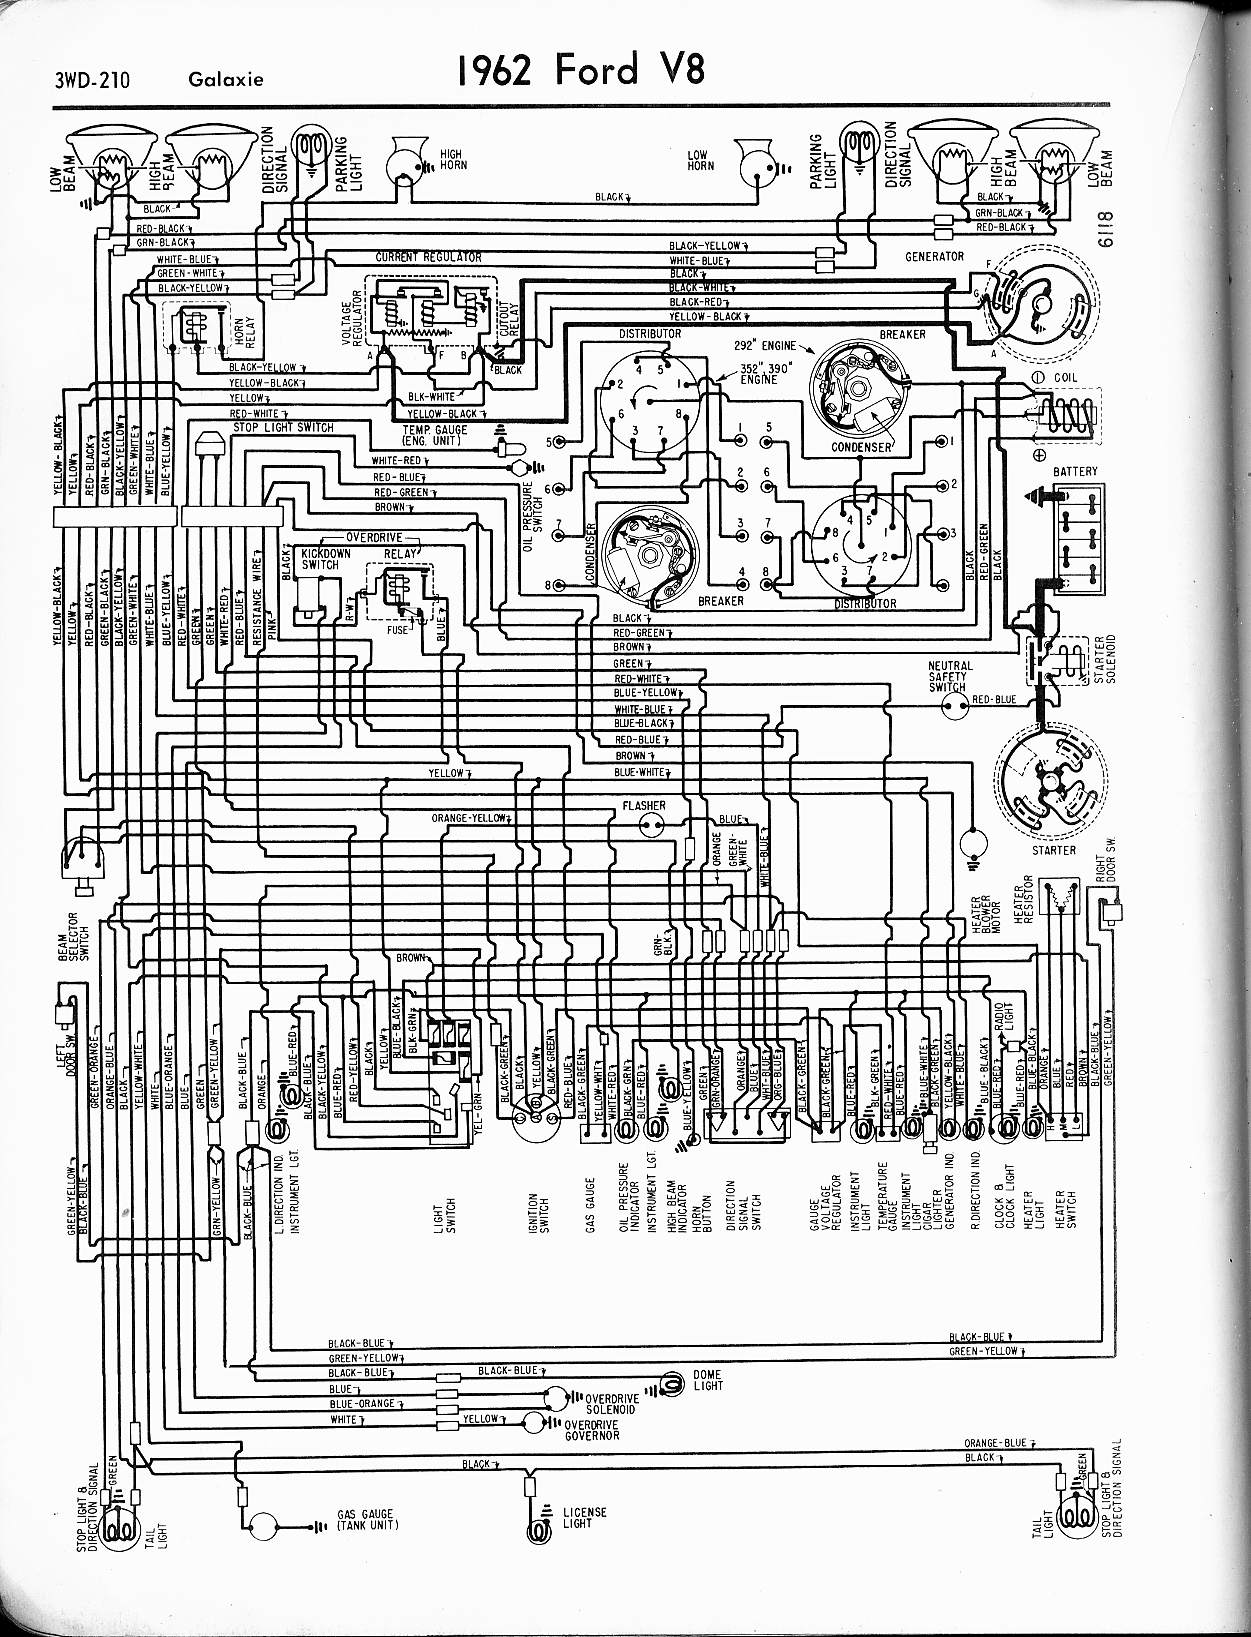 [DIAGRAM_38EU]  1966 Ford Falcon Wiring Diagram Schematic Wiring 3 Way Switch To From -  auto-car1991.tembak-andas4.the-rocks.it | 1966 Ford Truck Fuse Box |  | Bege Wiring Diagram Source Full Edition